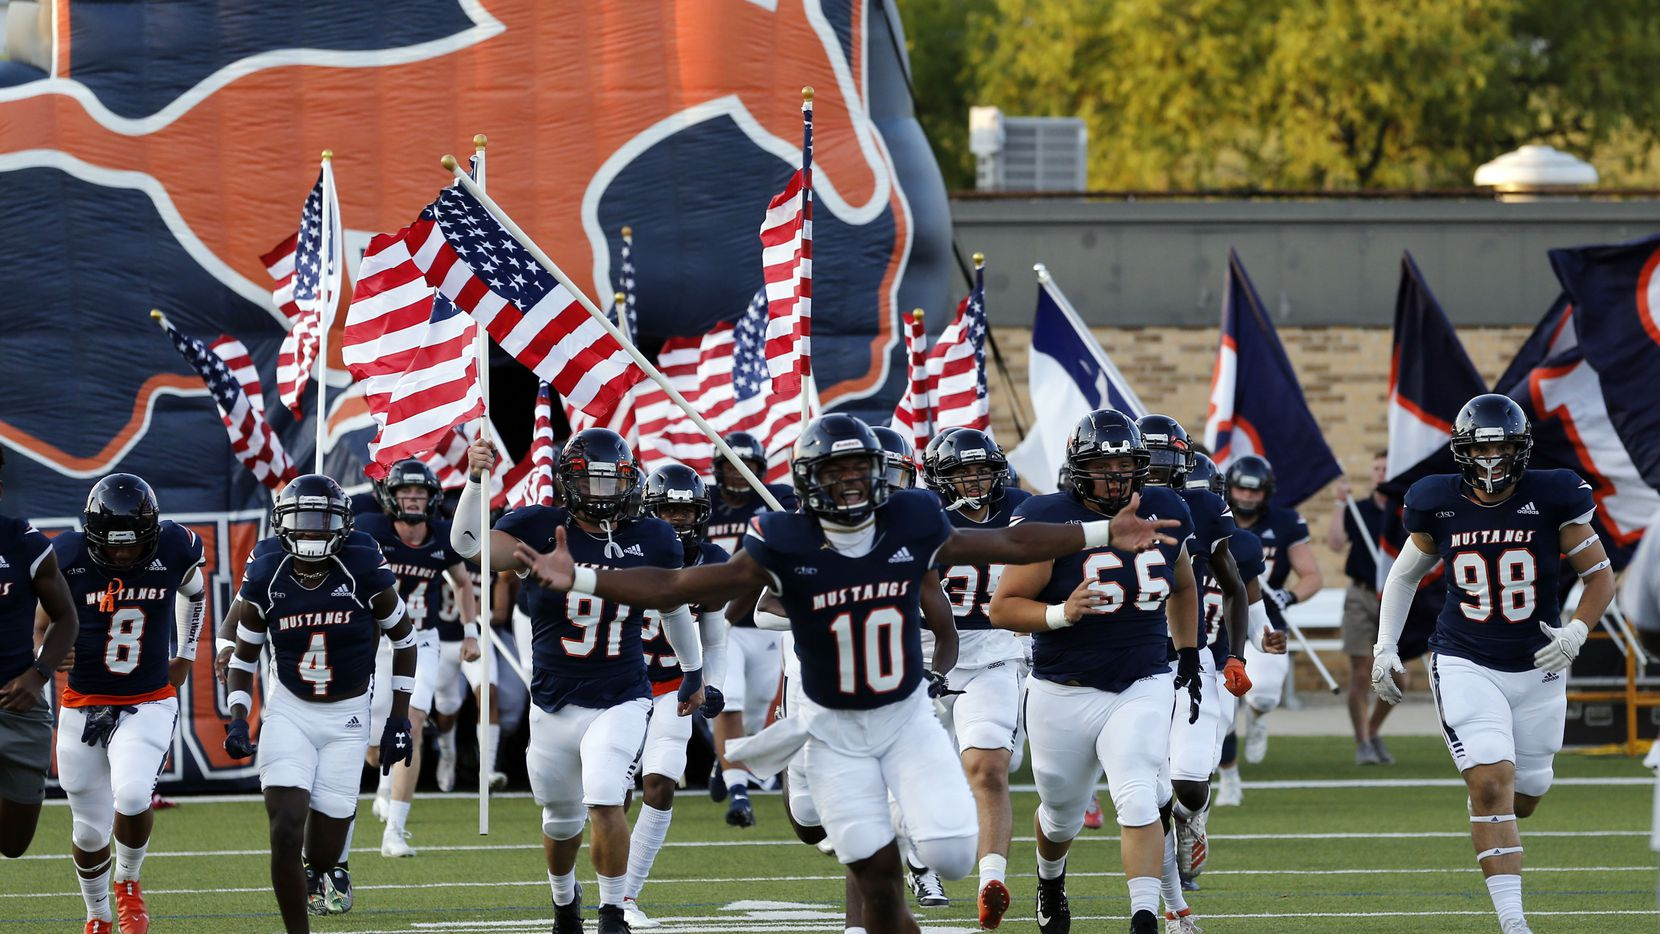 The Sachse High Mustangs run onto the field, led by QB Alex Orji (10), before the first half of a high school football game against Denton Braswell at Homer B Johnson Stadium in Garland on Thursday, September 9, 2021.